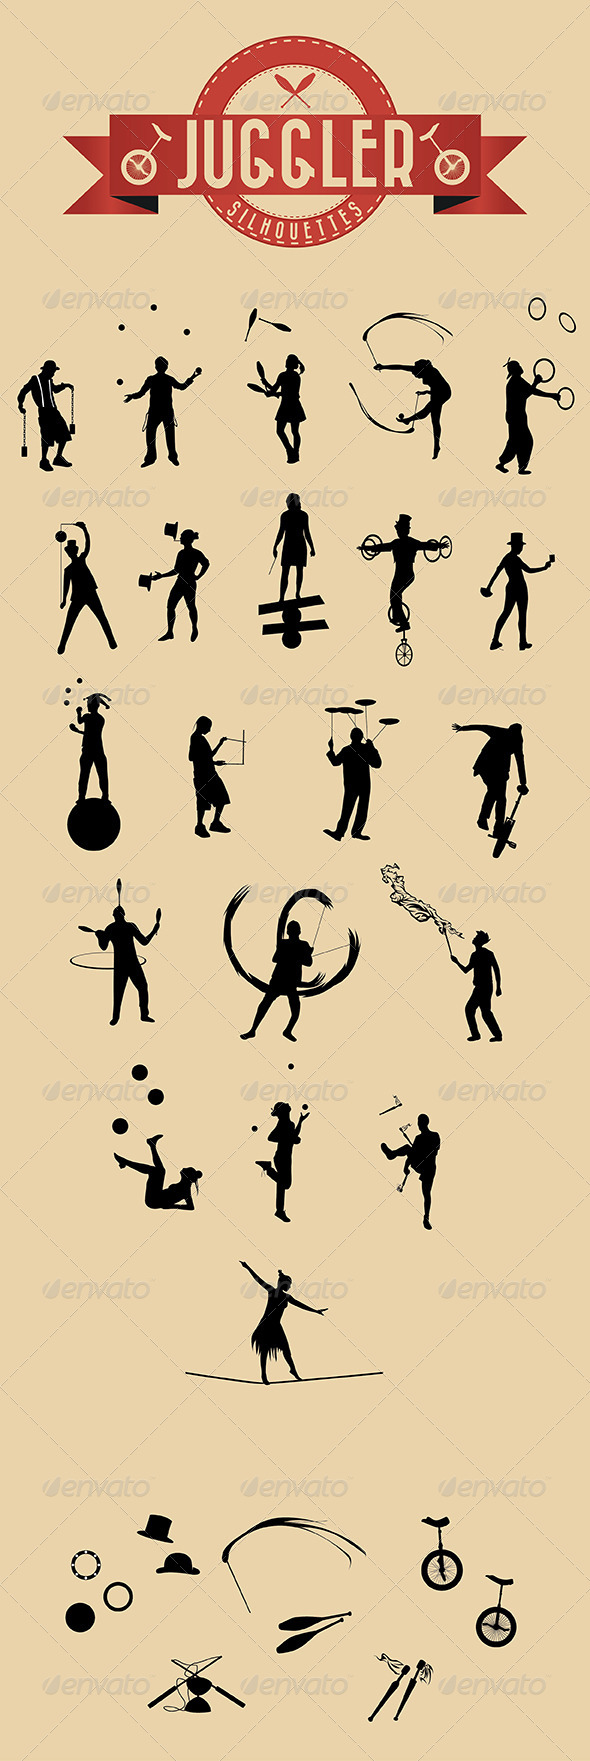 GraphicRiver 21 Jugglers Vector Silhouettes 6255096